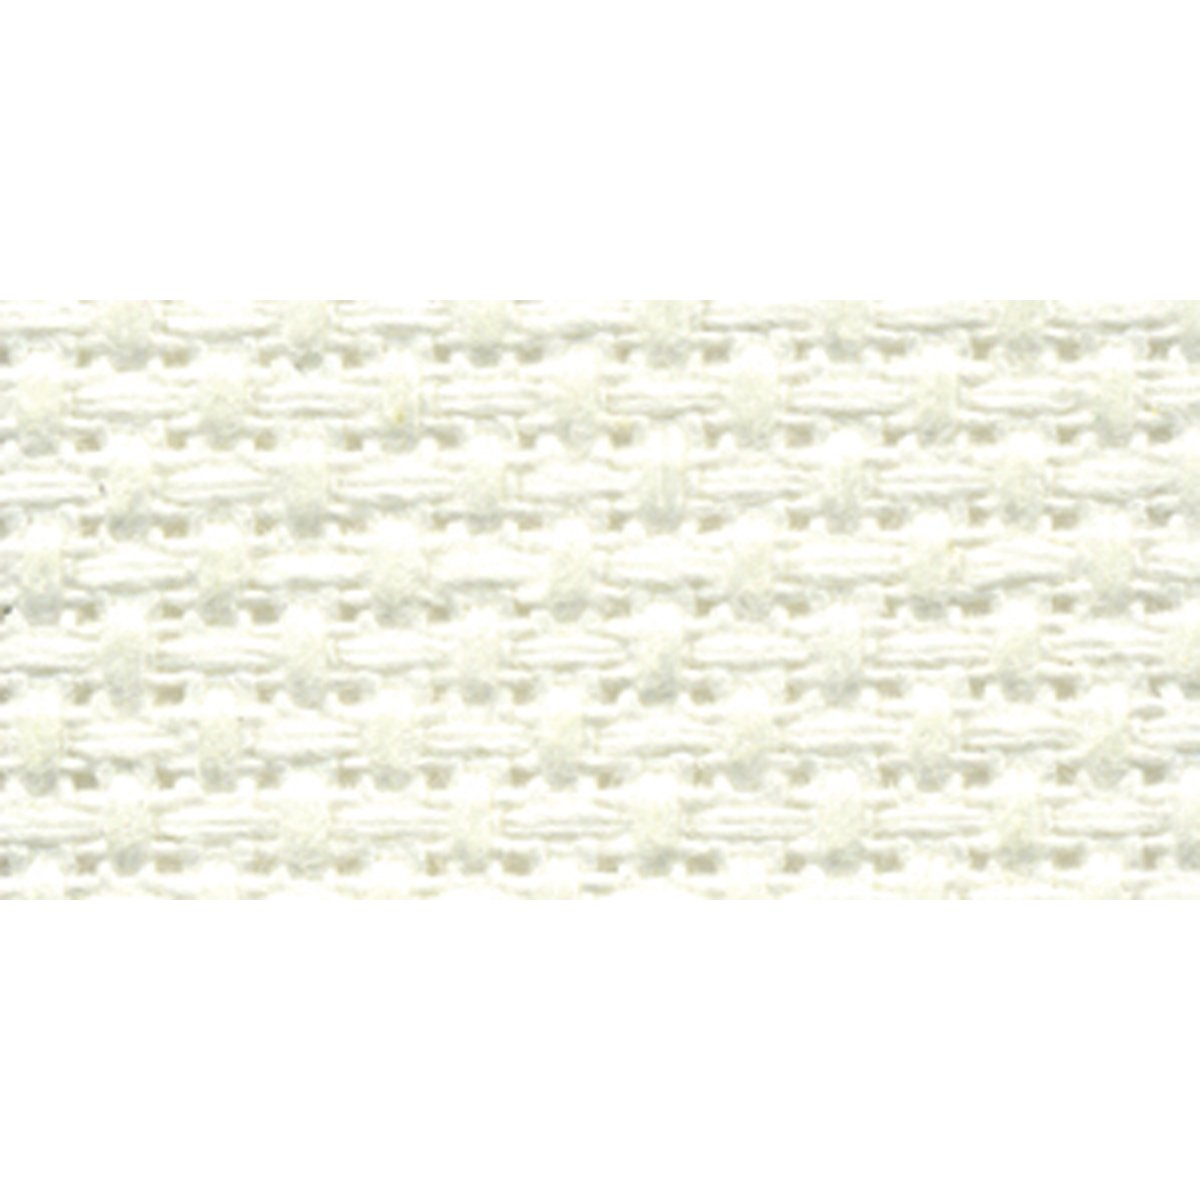 DMC TC8136-6750 Silver Label Aida Cloth with Soft Tube 11-Pack 15 by 18-Inch White